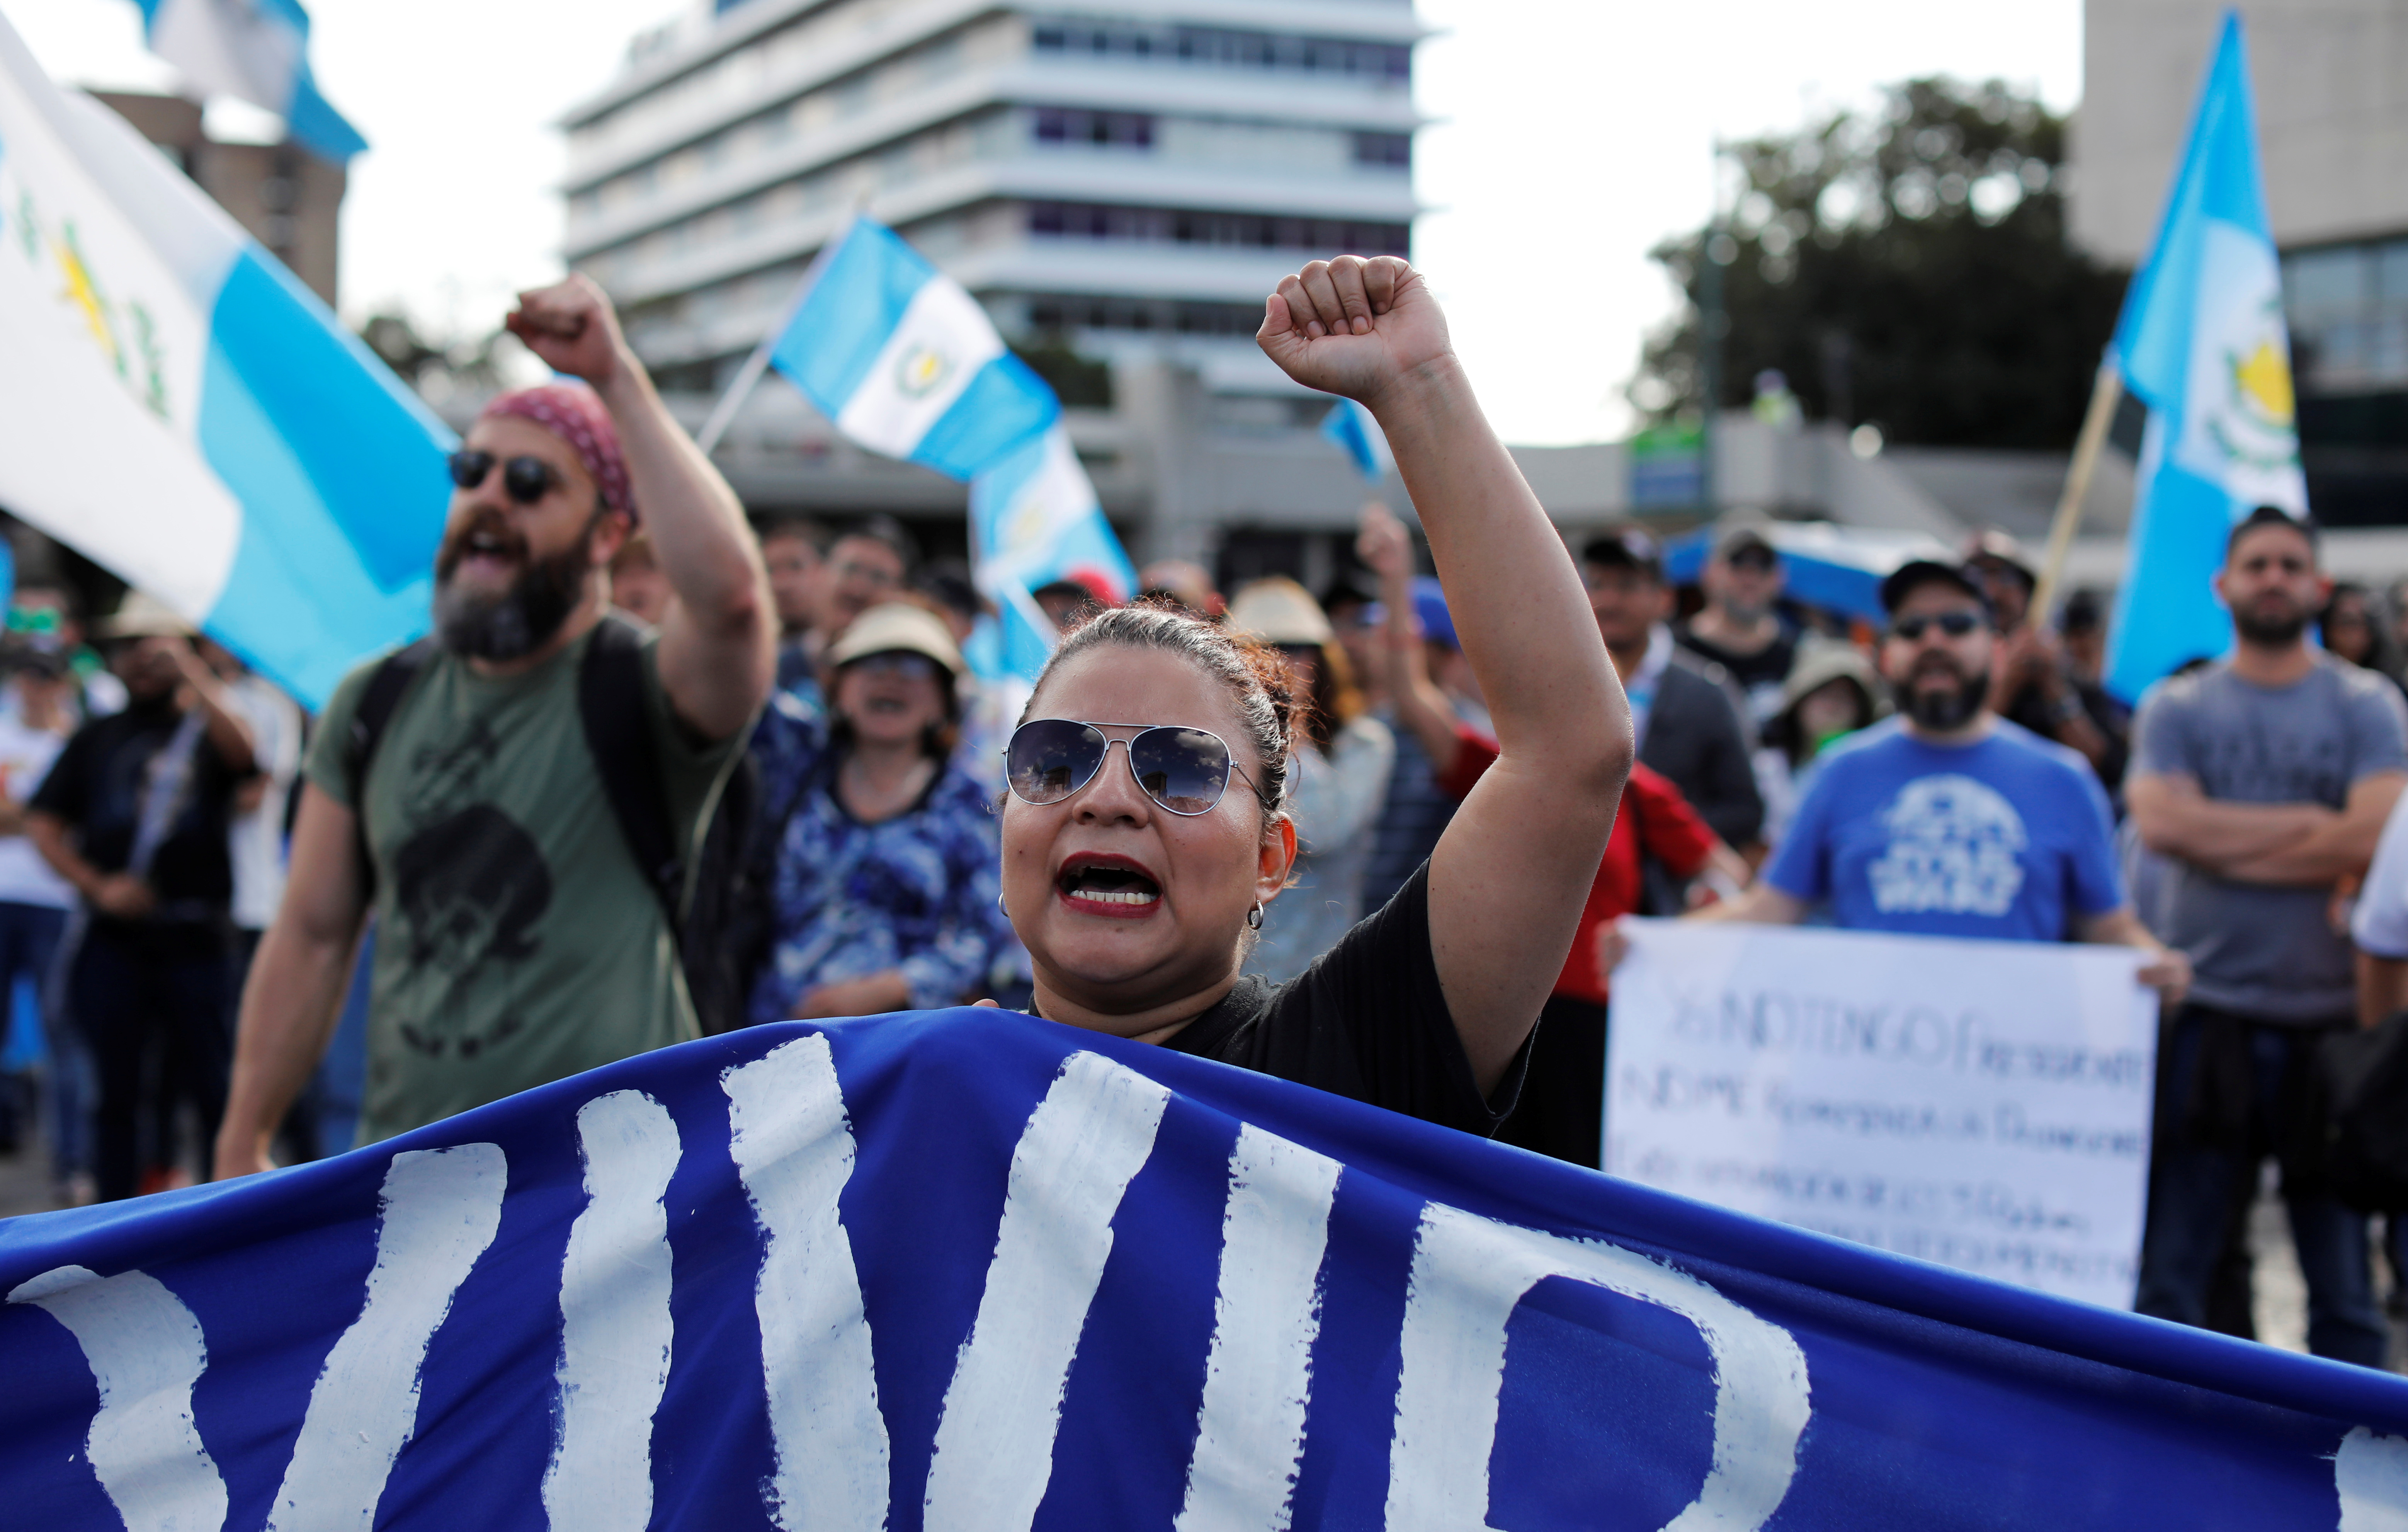 Guatemala's anti-corruption commission is ending, but the fight will go on